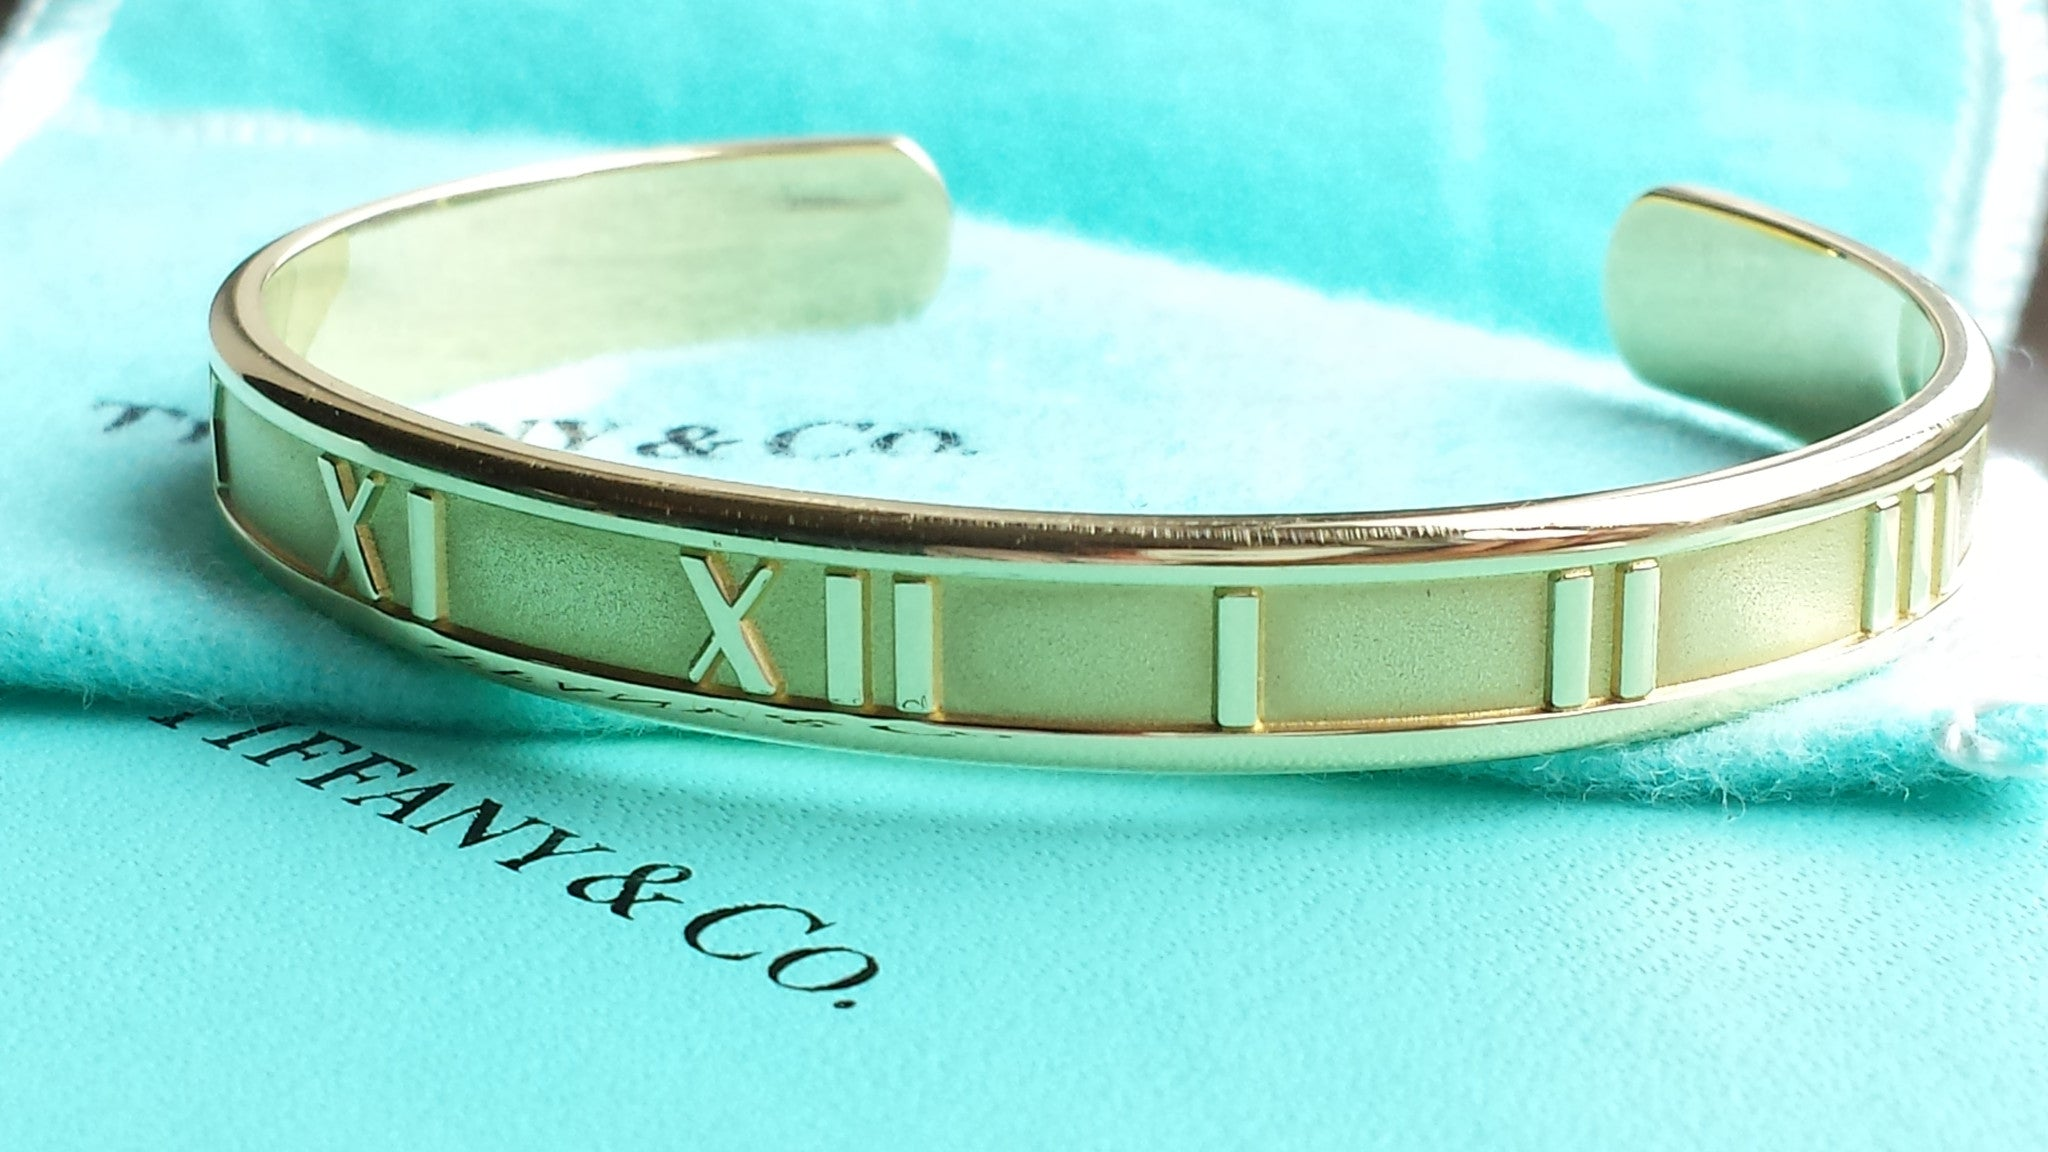 Tiffany & Co. Atlas Open Cuff Bracelet / Bangle in 18K Yellow Gold